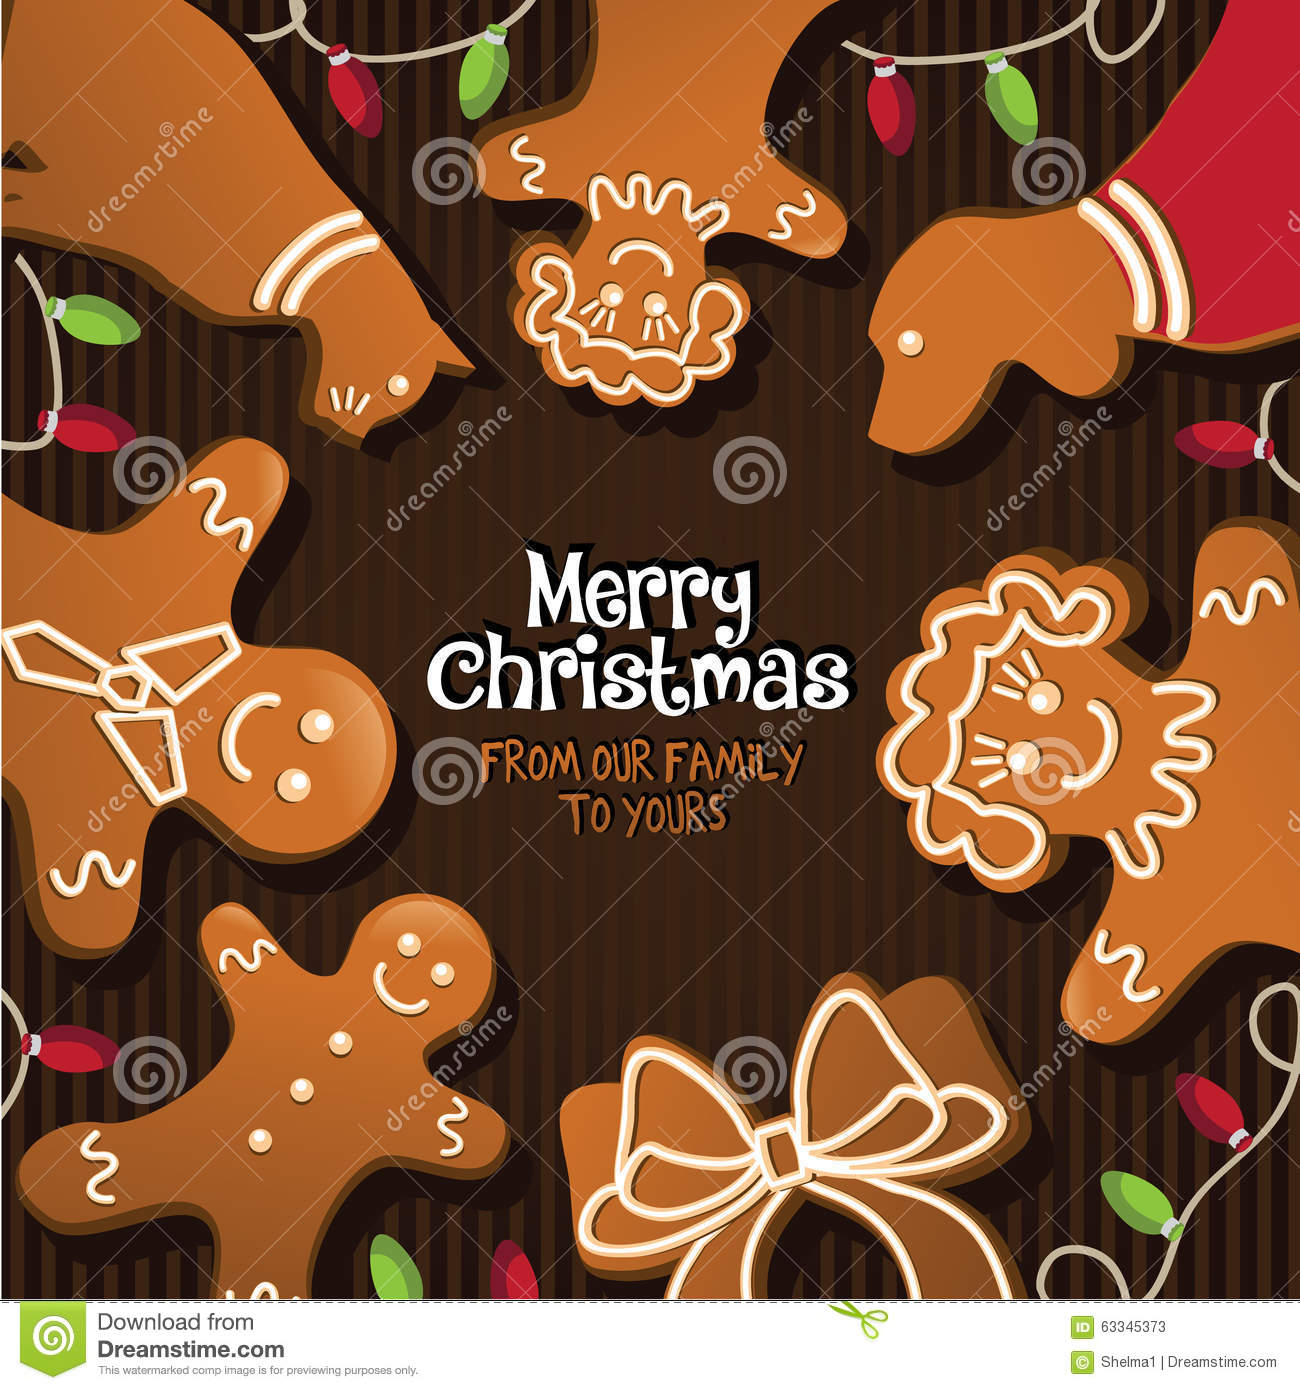 download merry christmas from our family to yours stock vector illustration of baked royalty